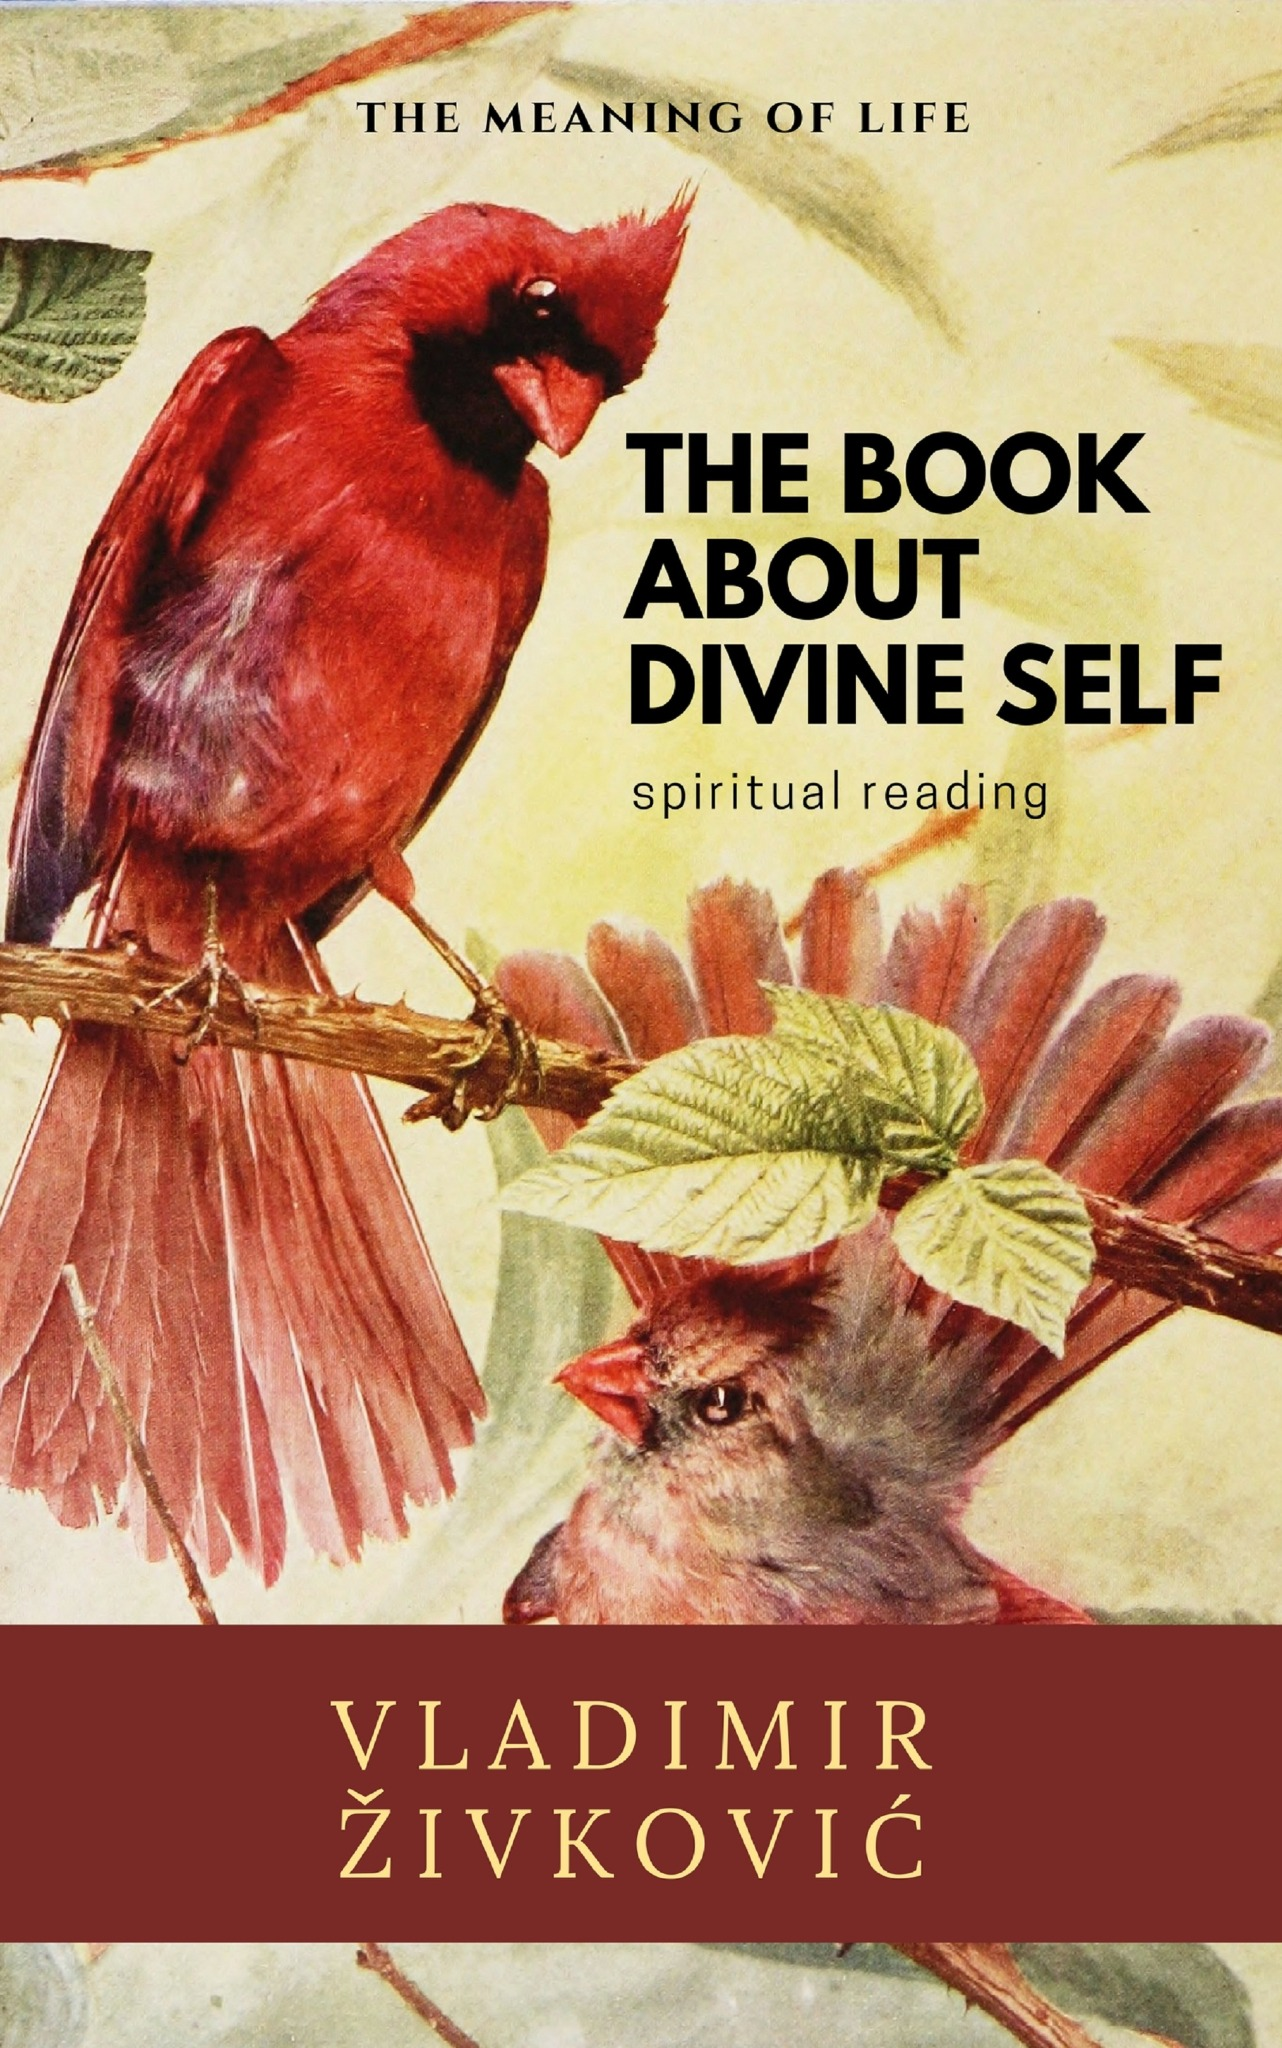 The Book About Divine Self